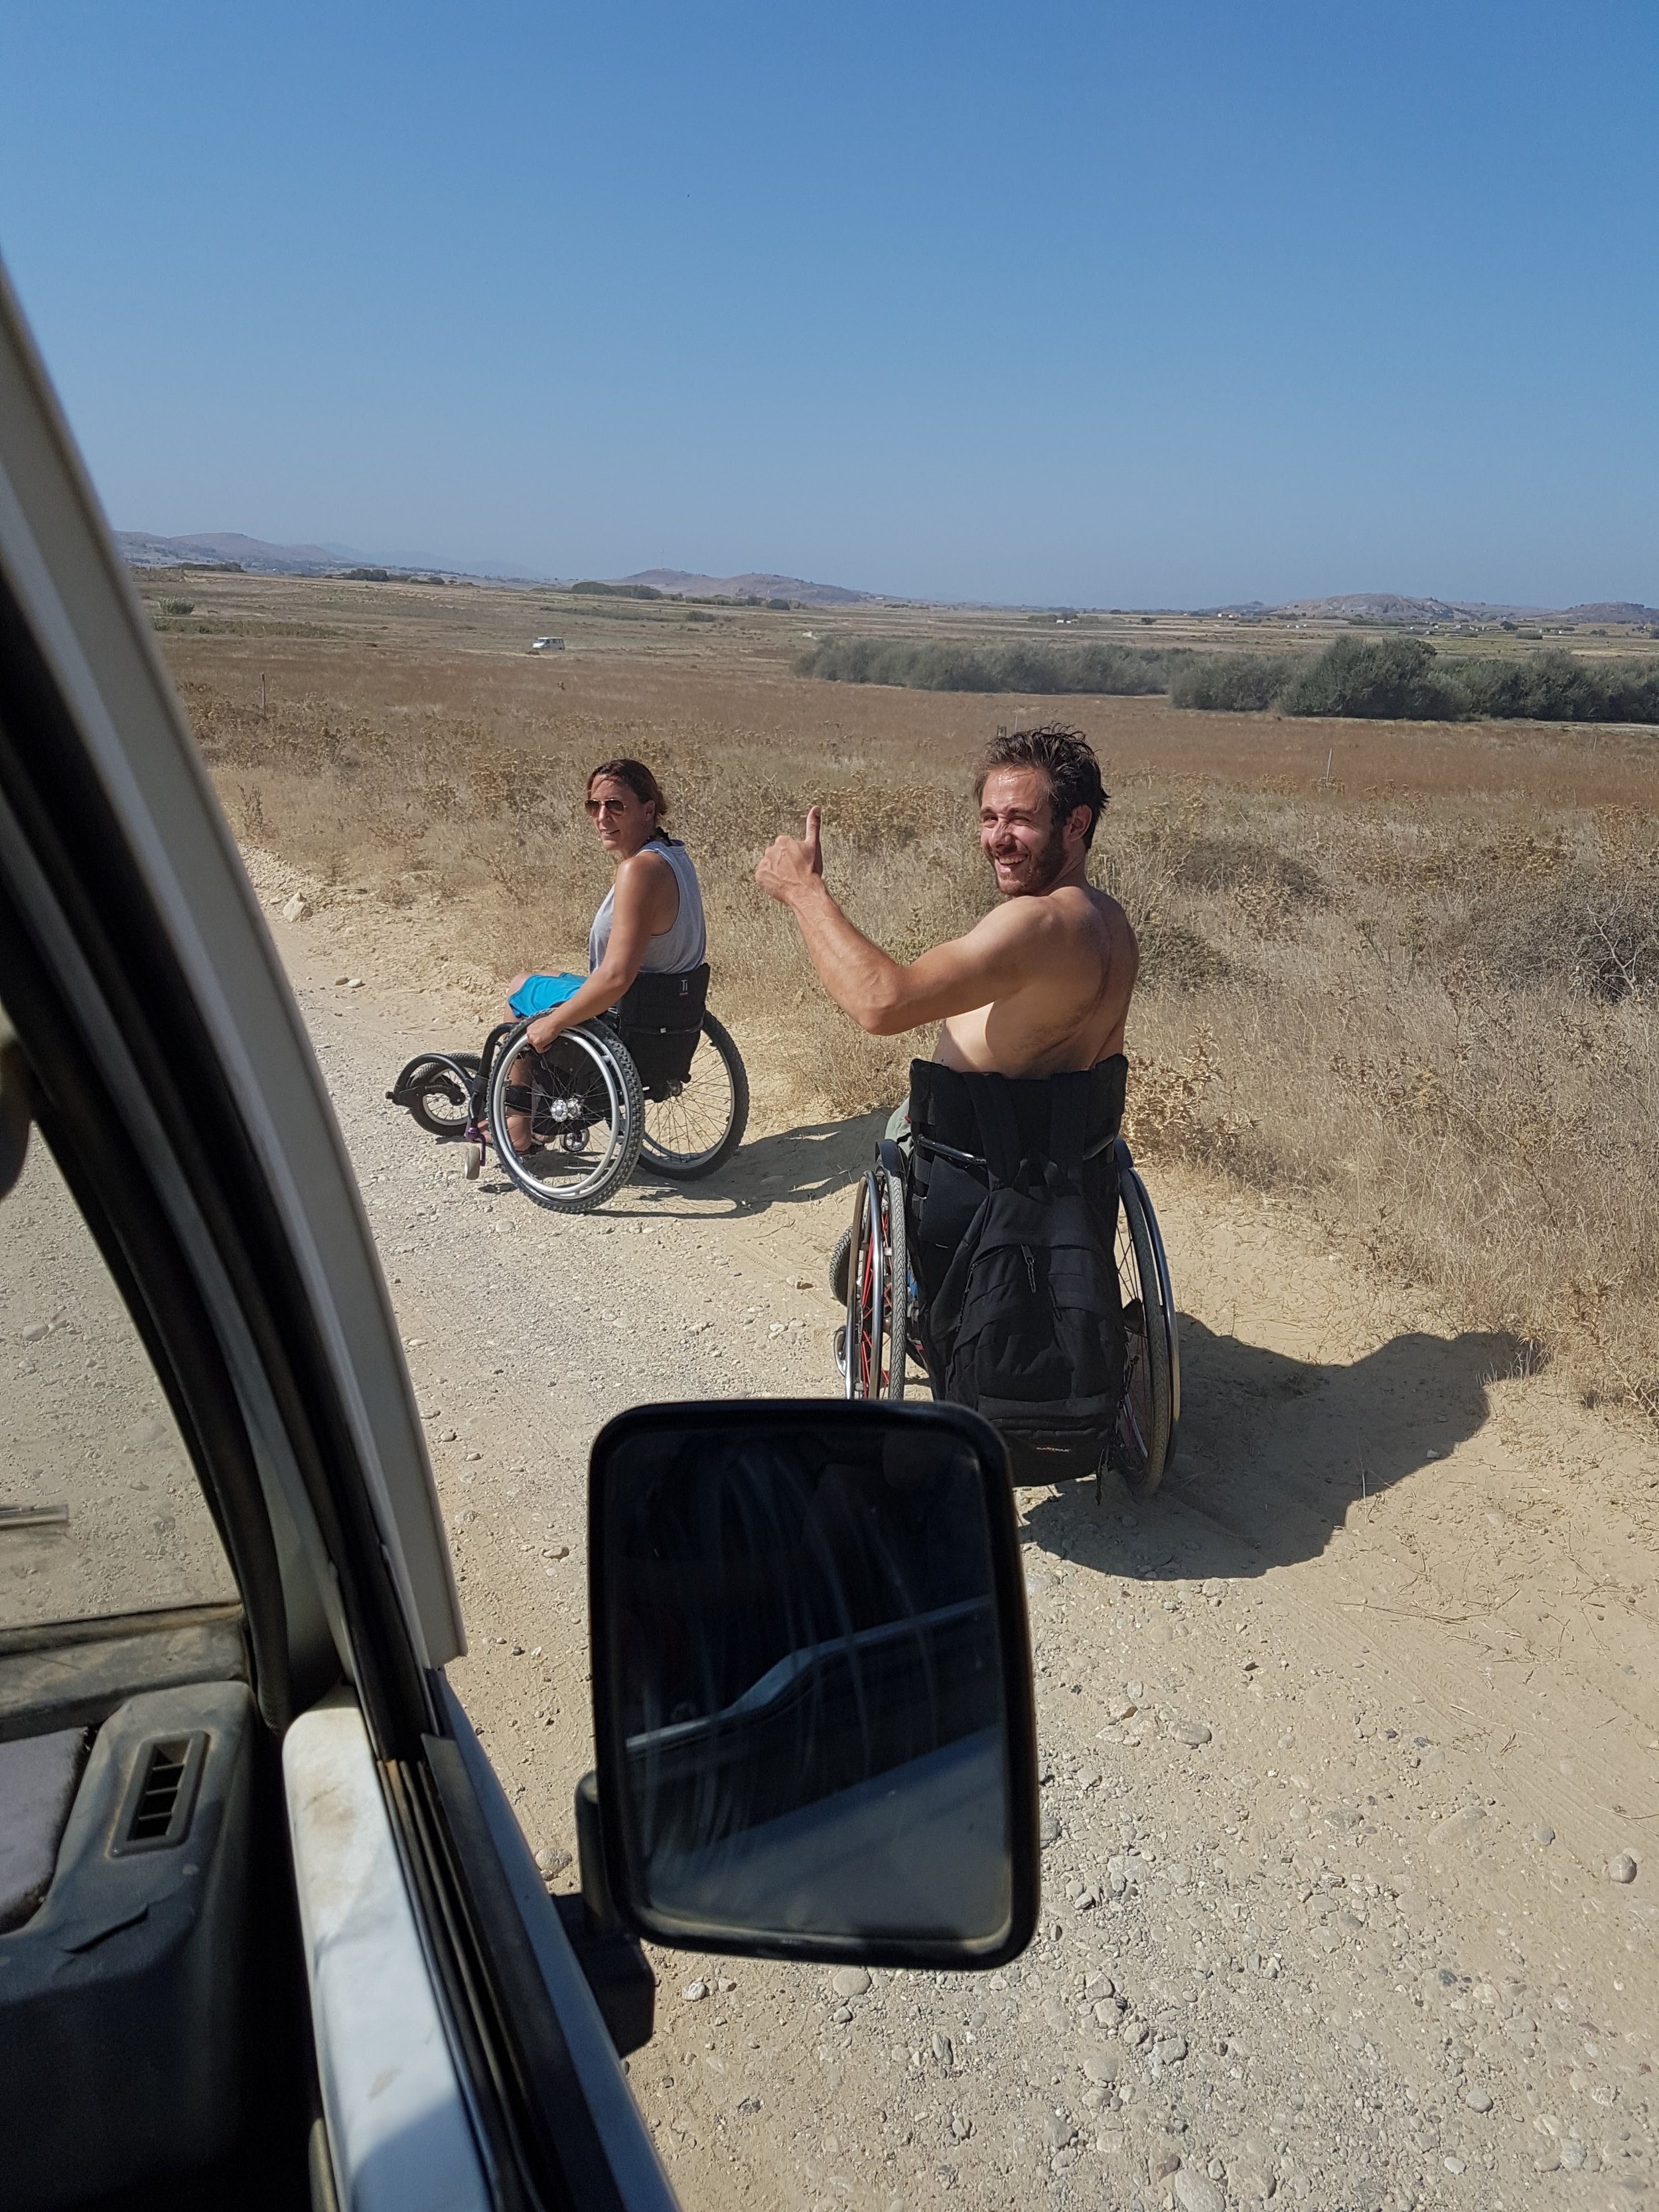 Travelling To The Beach - Day 1 - Jane and Robbert